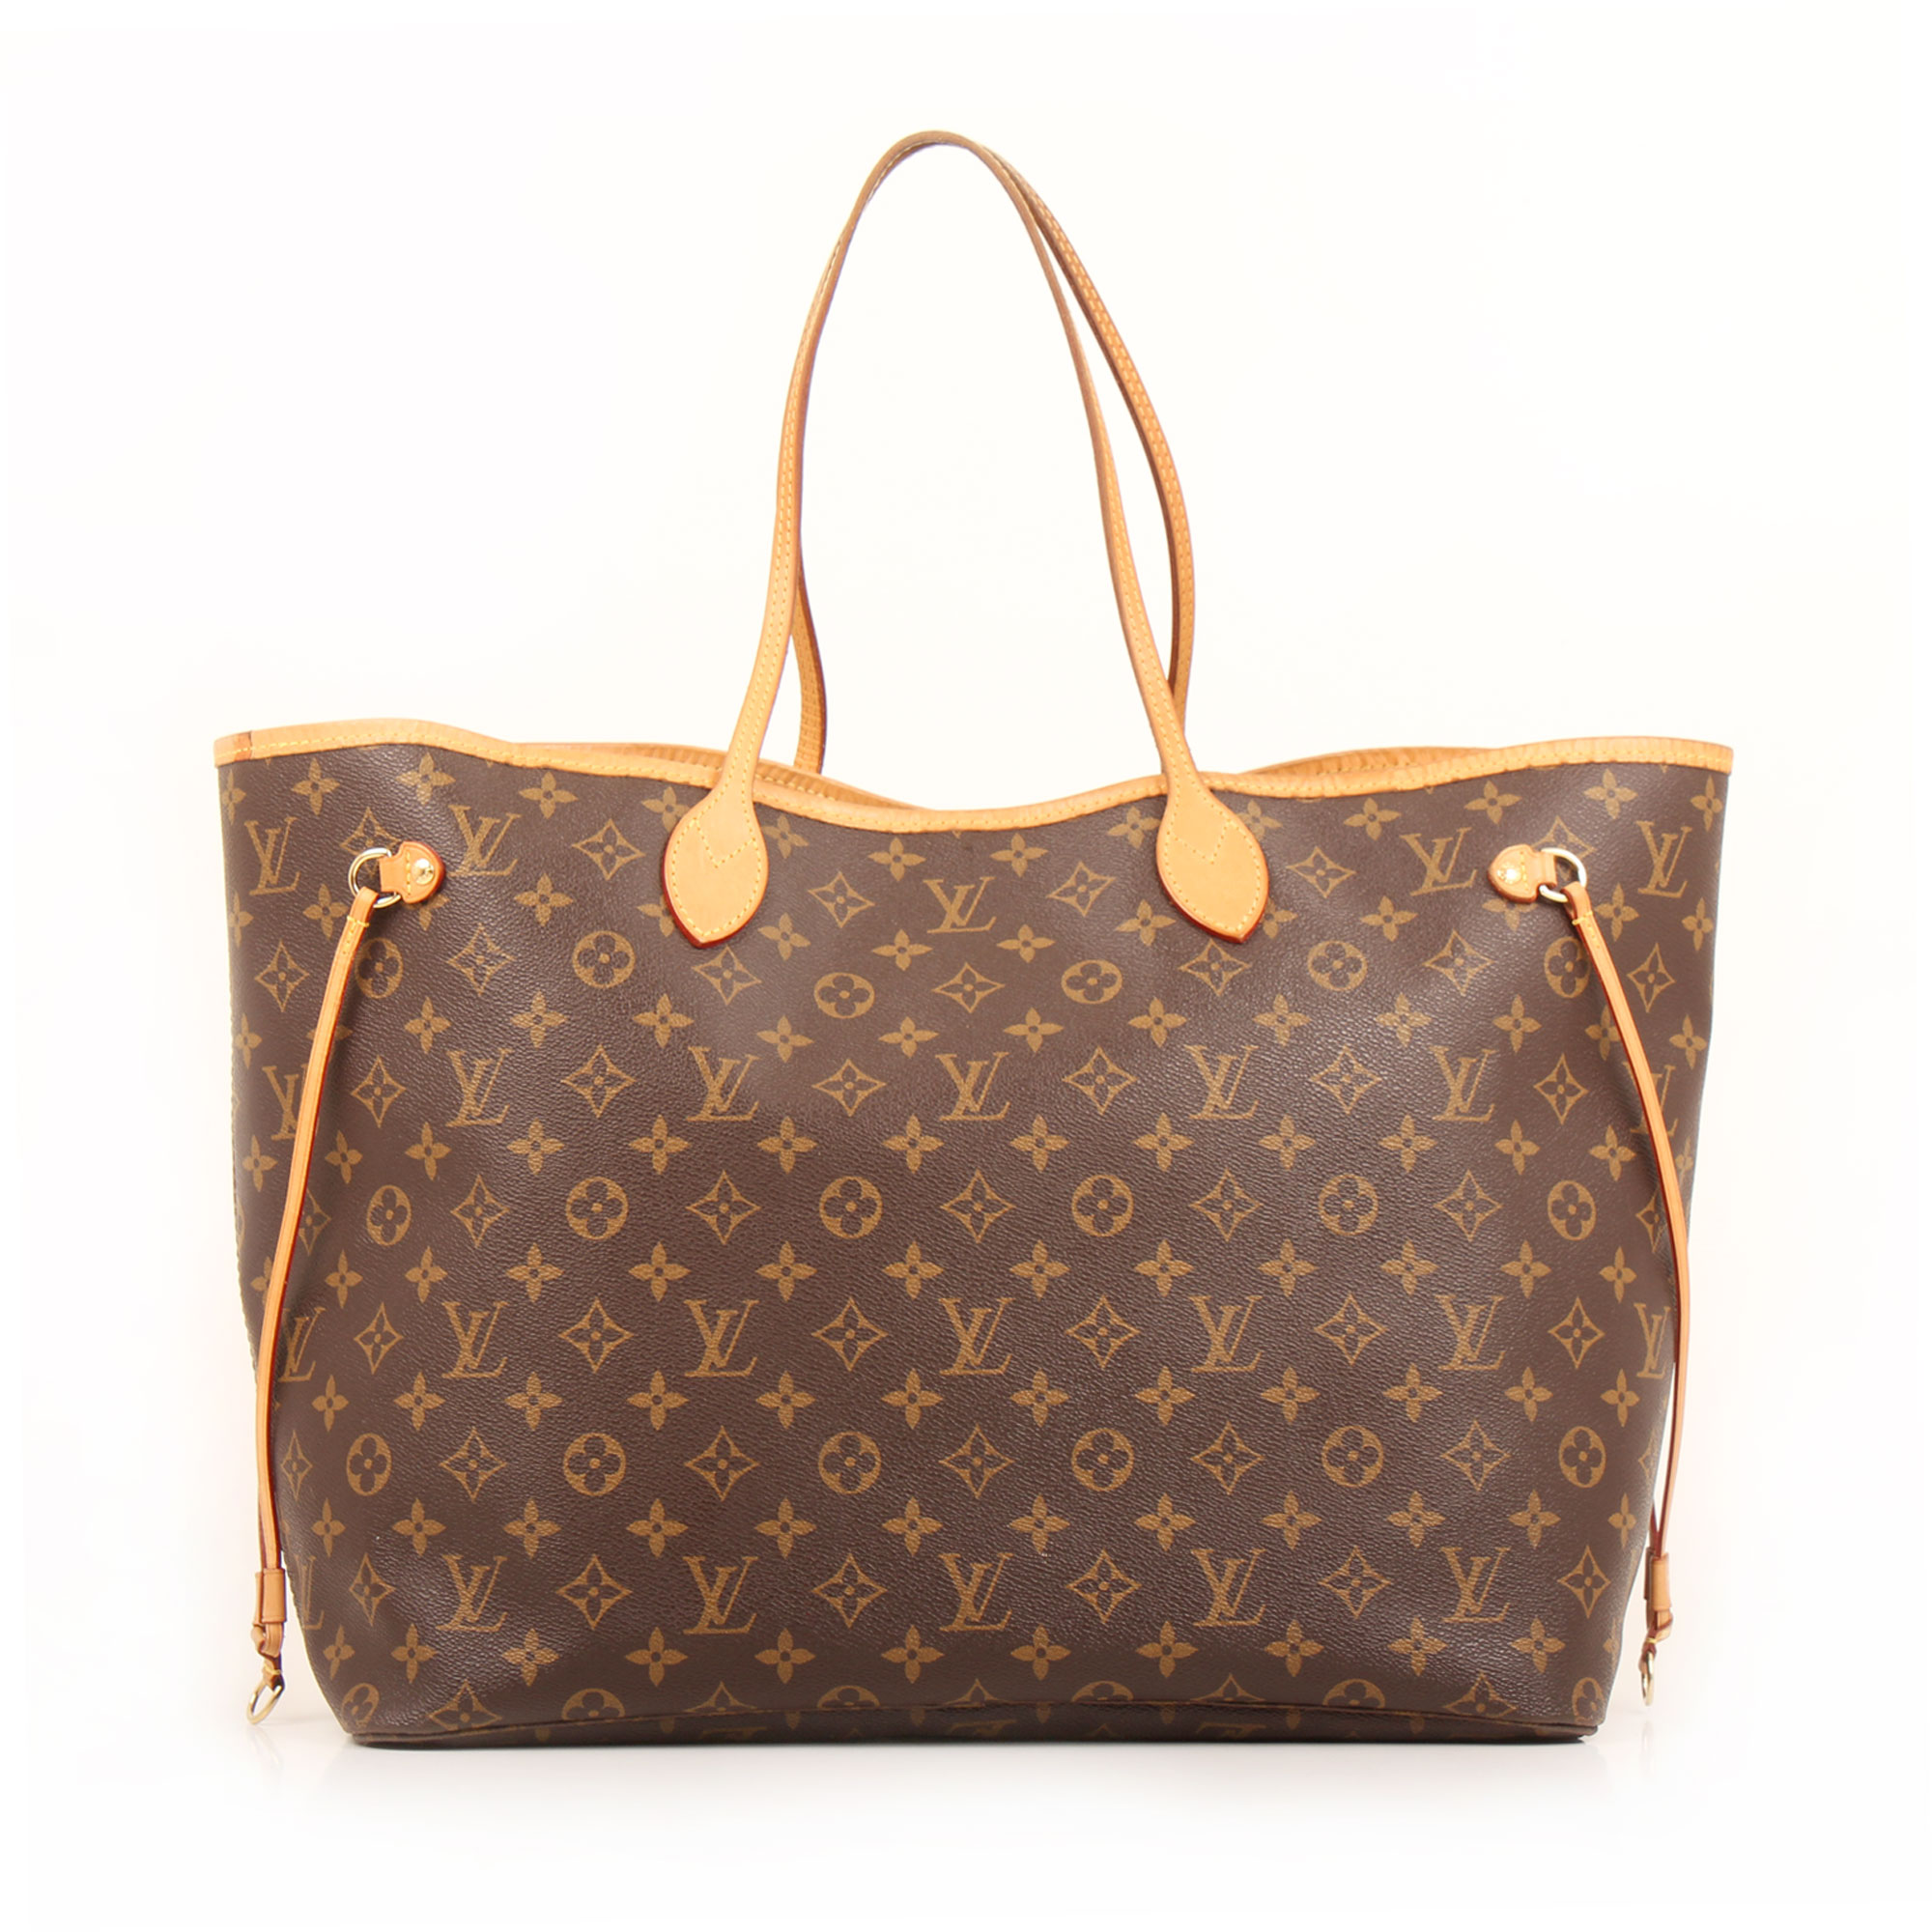 Front image of louis vuitton neverfull gm monogram